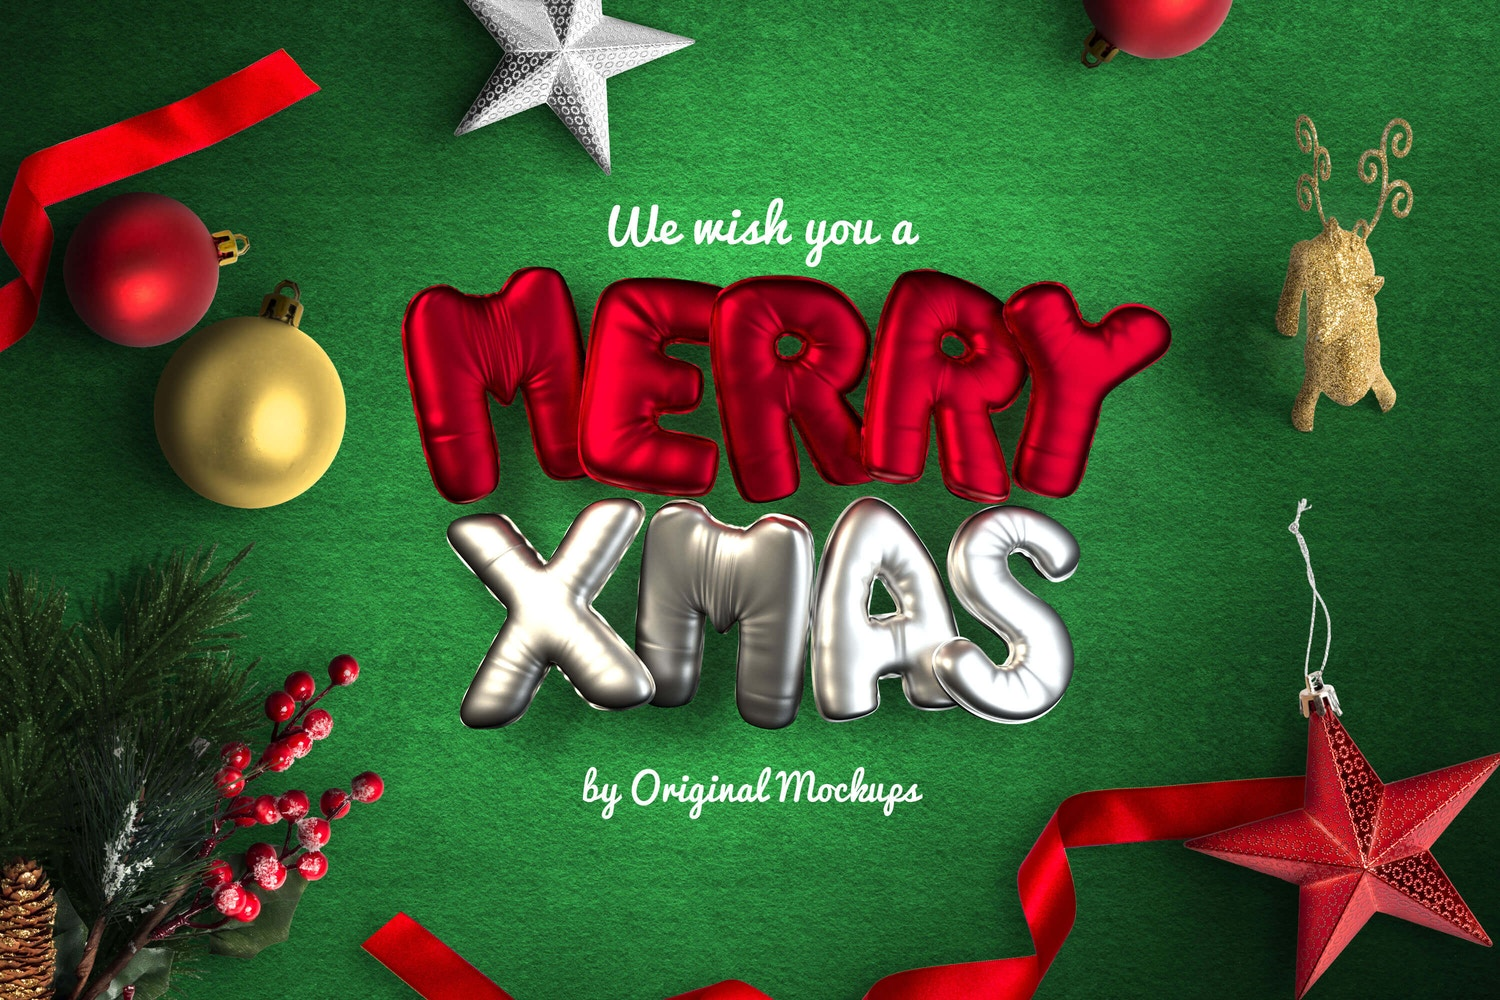 Christmas Header And Hero Scene Mockup 13 por Original Mockups en Original Mockups